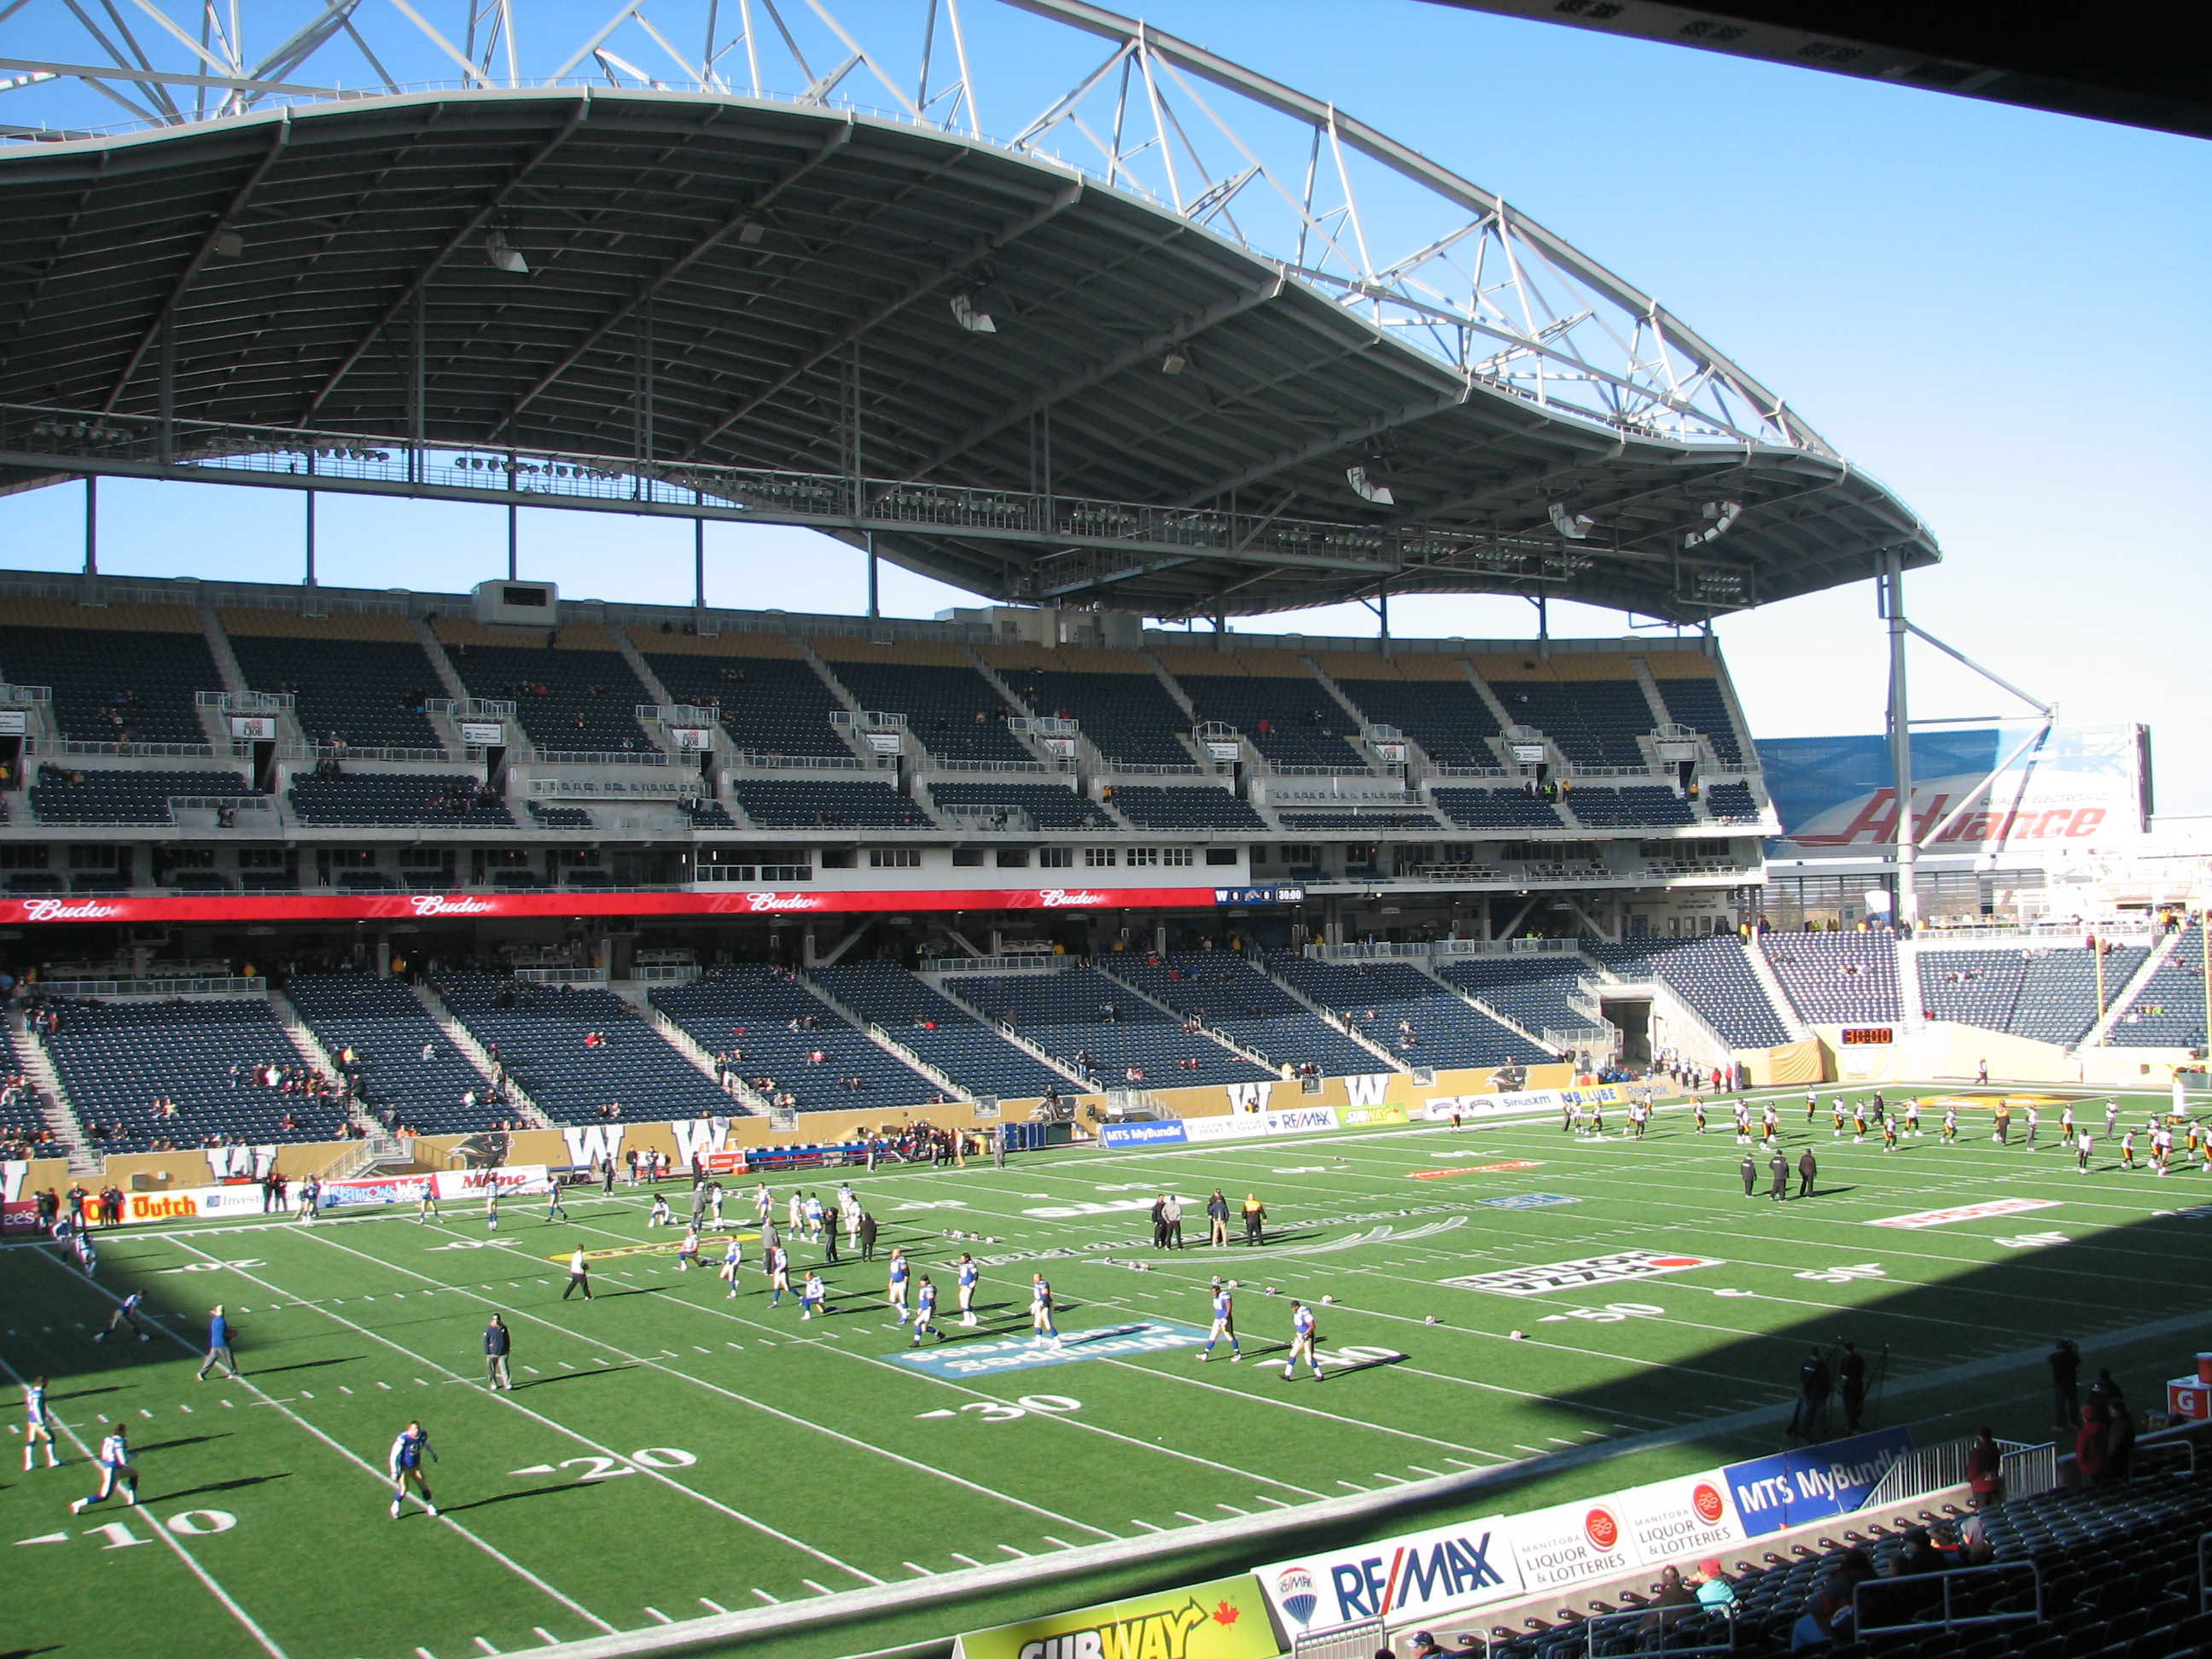 Depiction of Investors Group Field